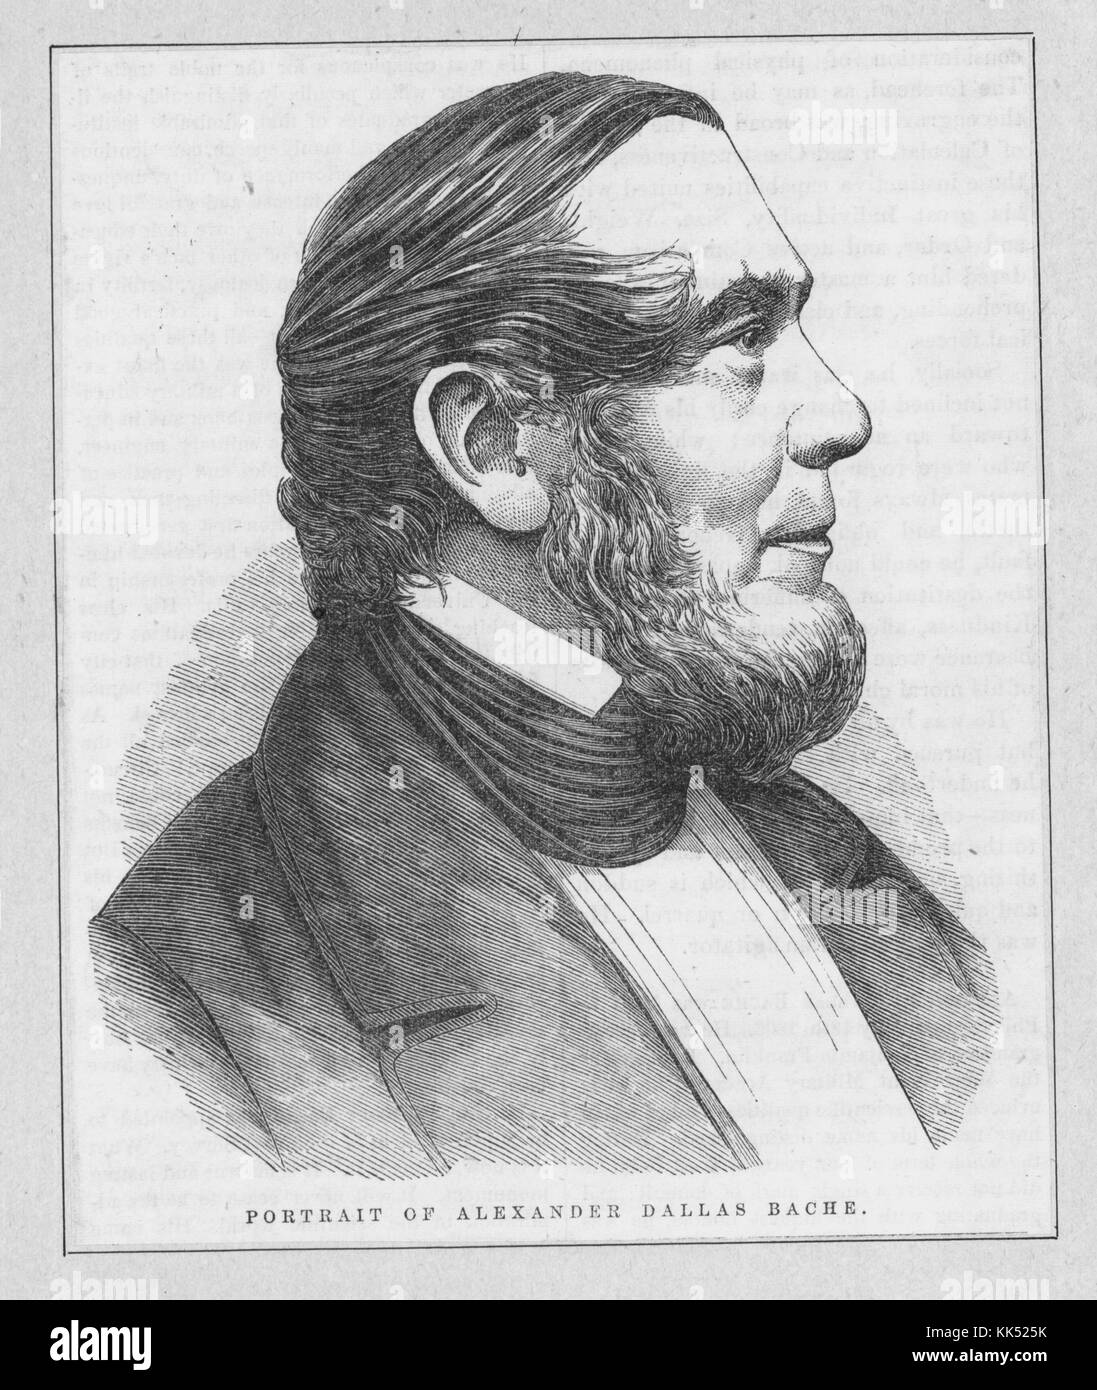 Wood engraving, portrait of Alexander Dallas Bache, an American physicist, scientist, and surveyor who erected coastal - Stock Image